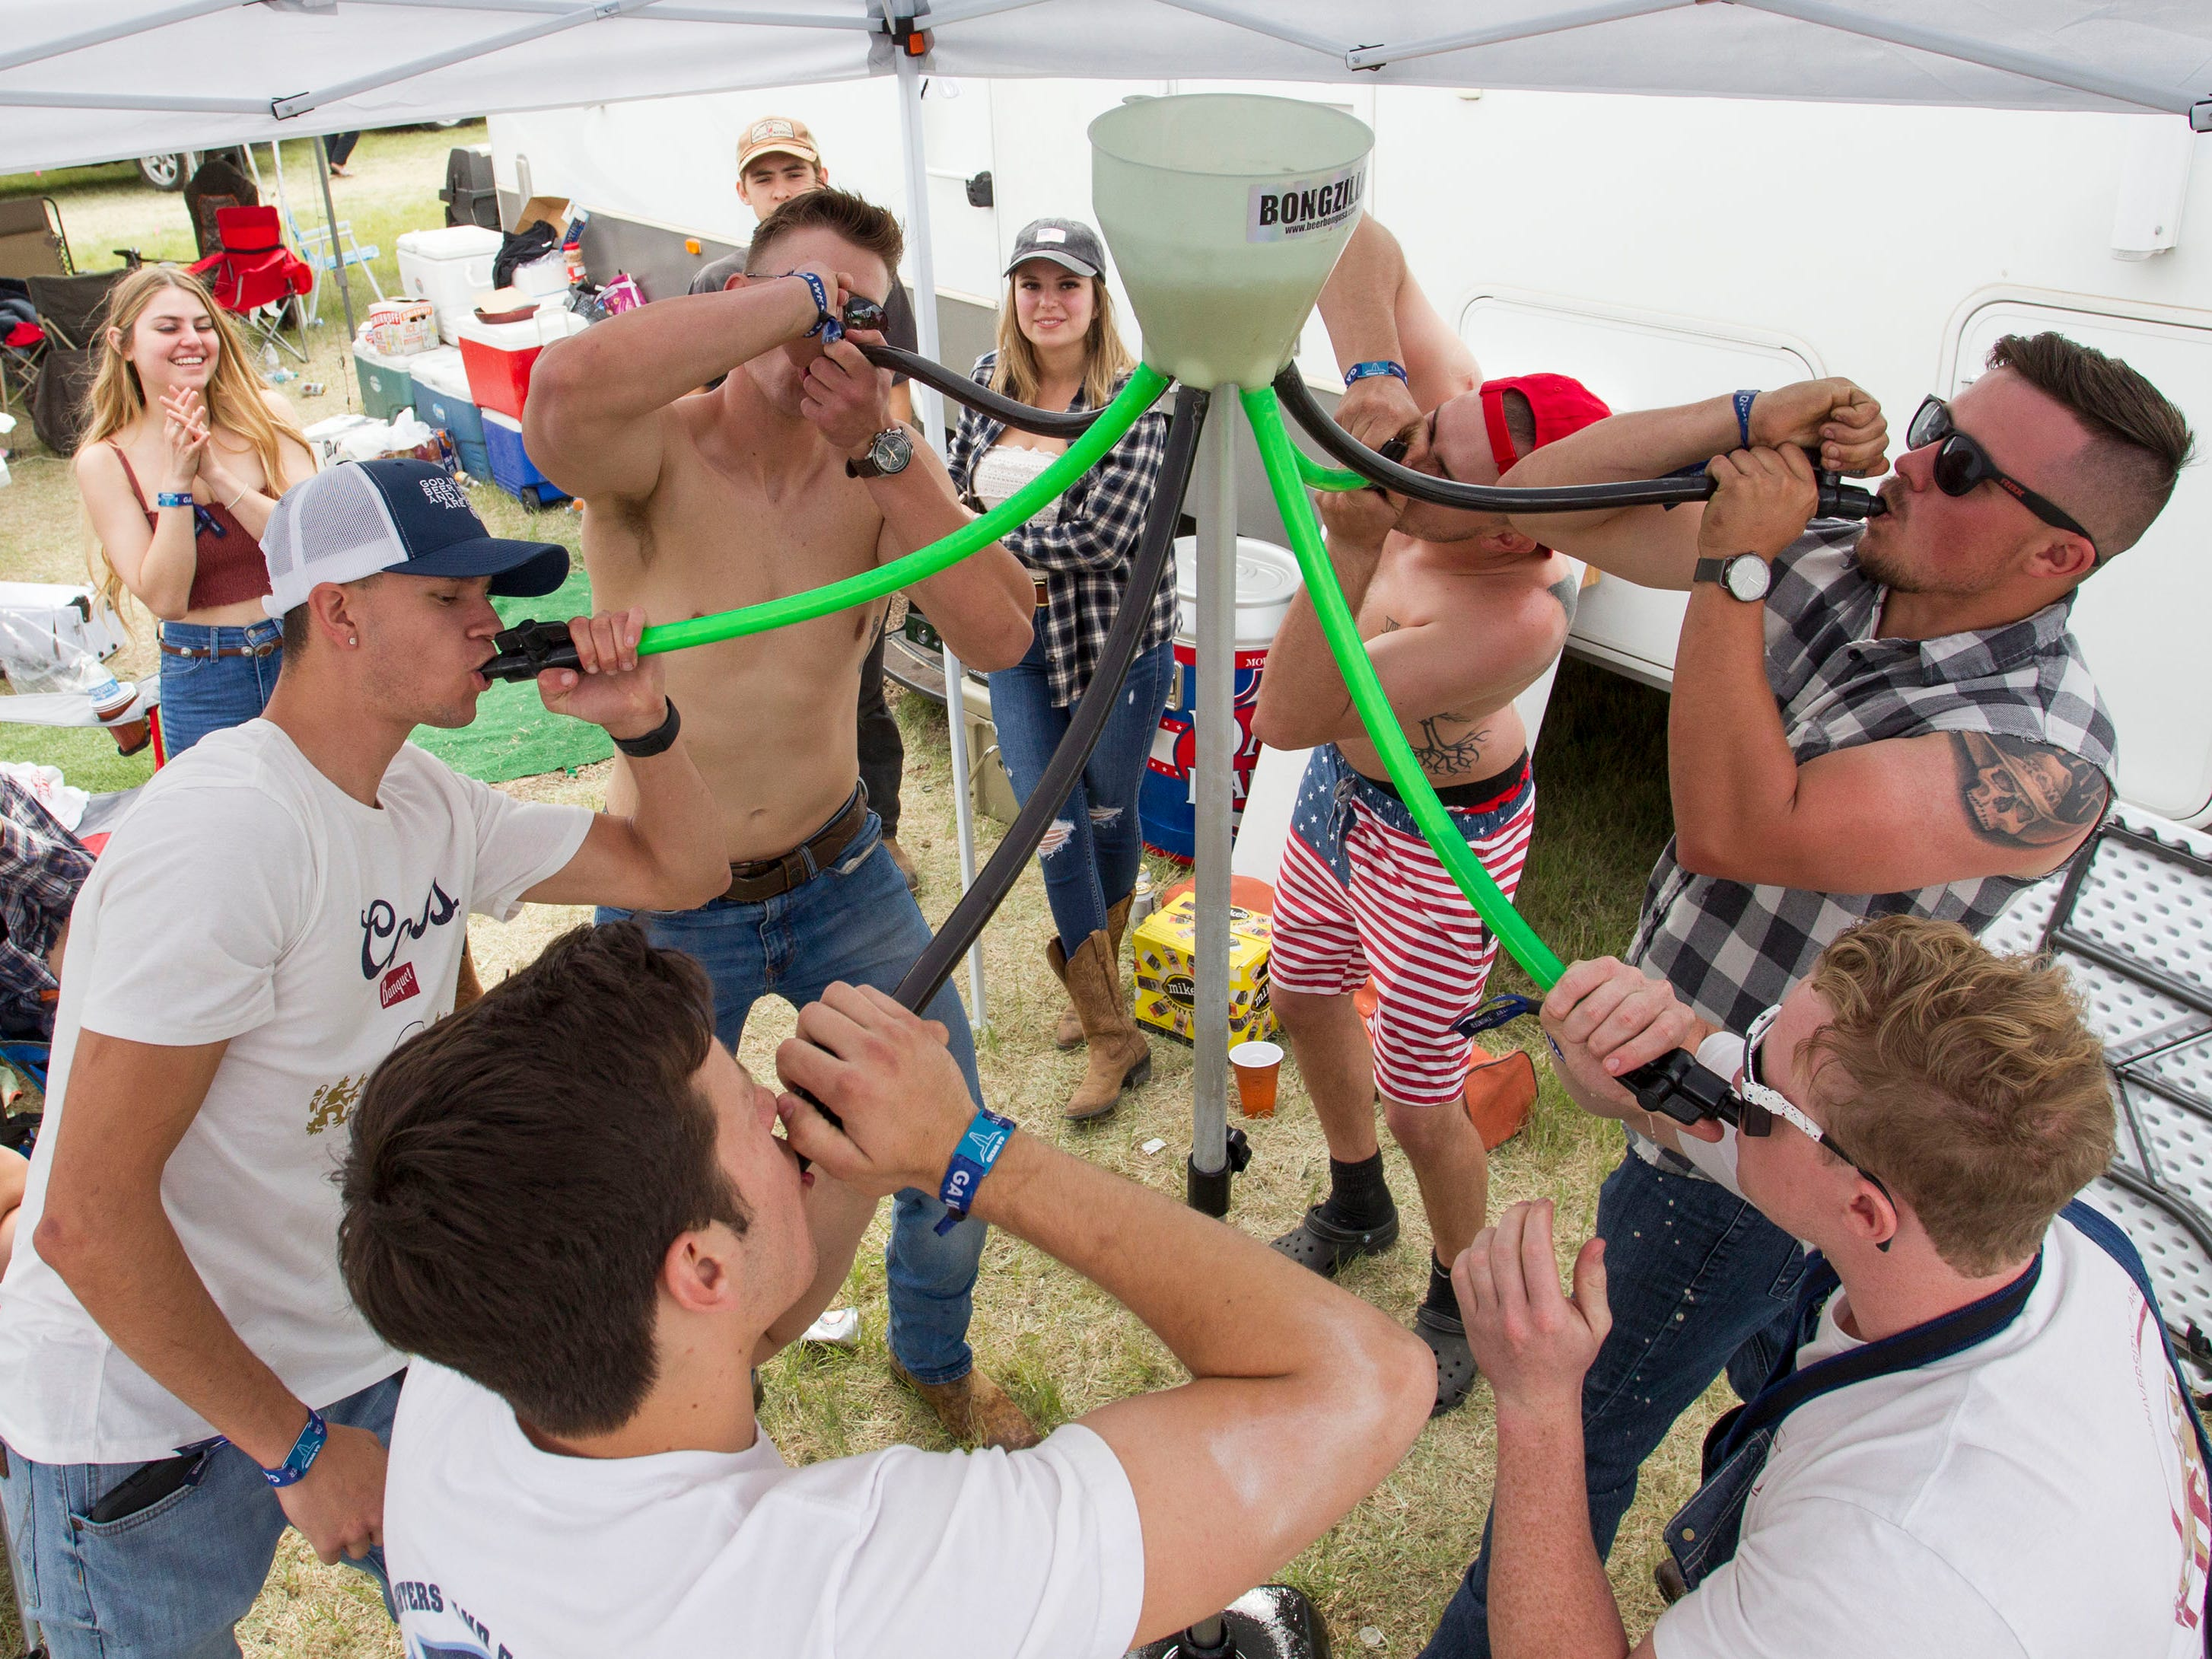 Boys from Tucson do a 10:30 a.m. Godzilla shot of beer during Country Thunder Arizona on April 12, 2019, in Florence, Ariz.